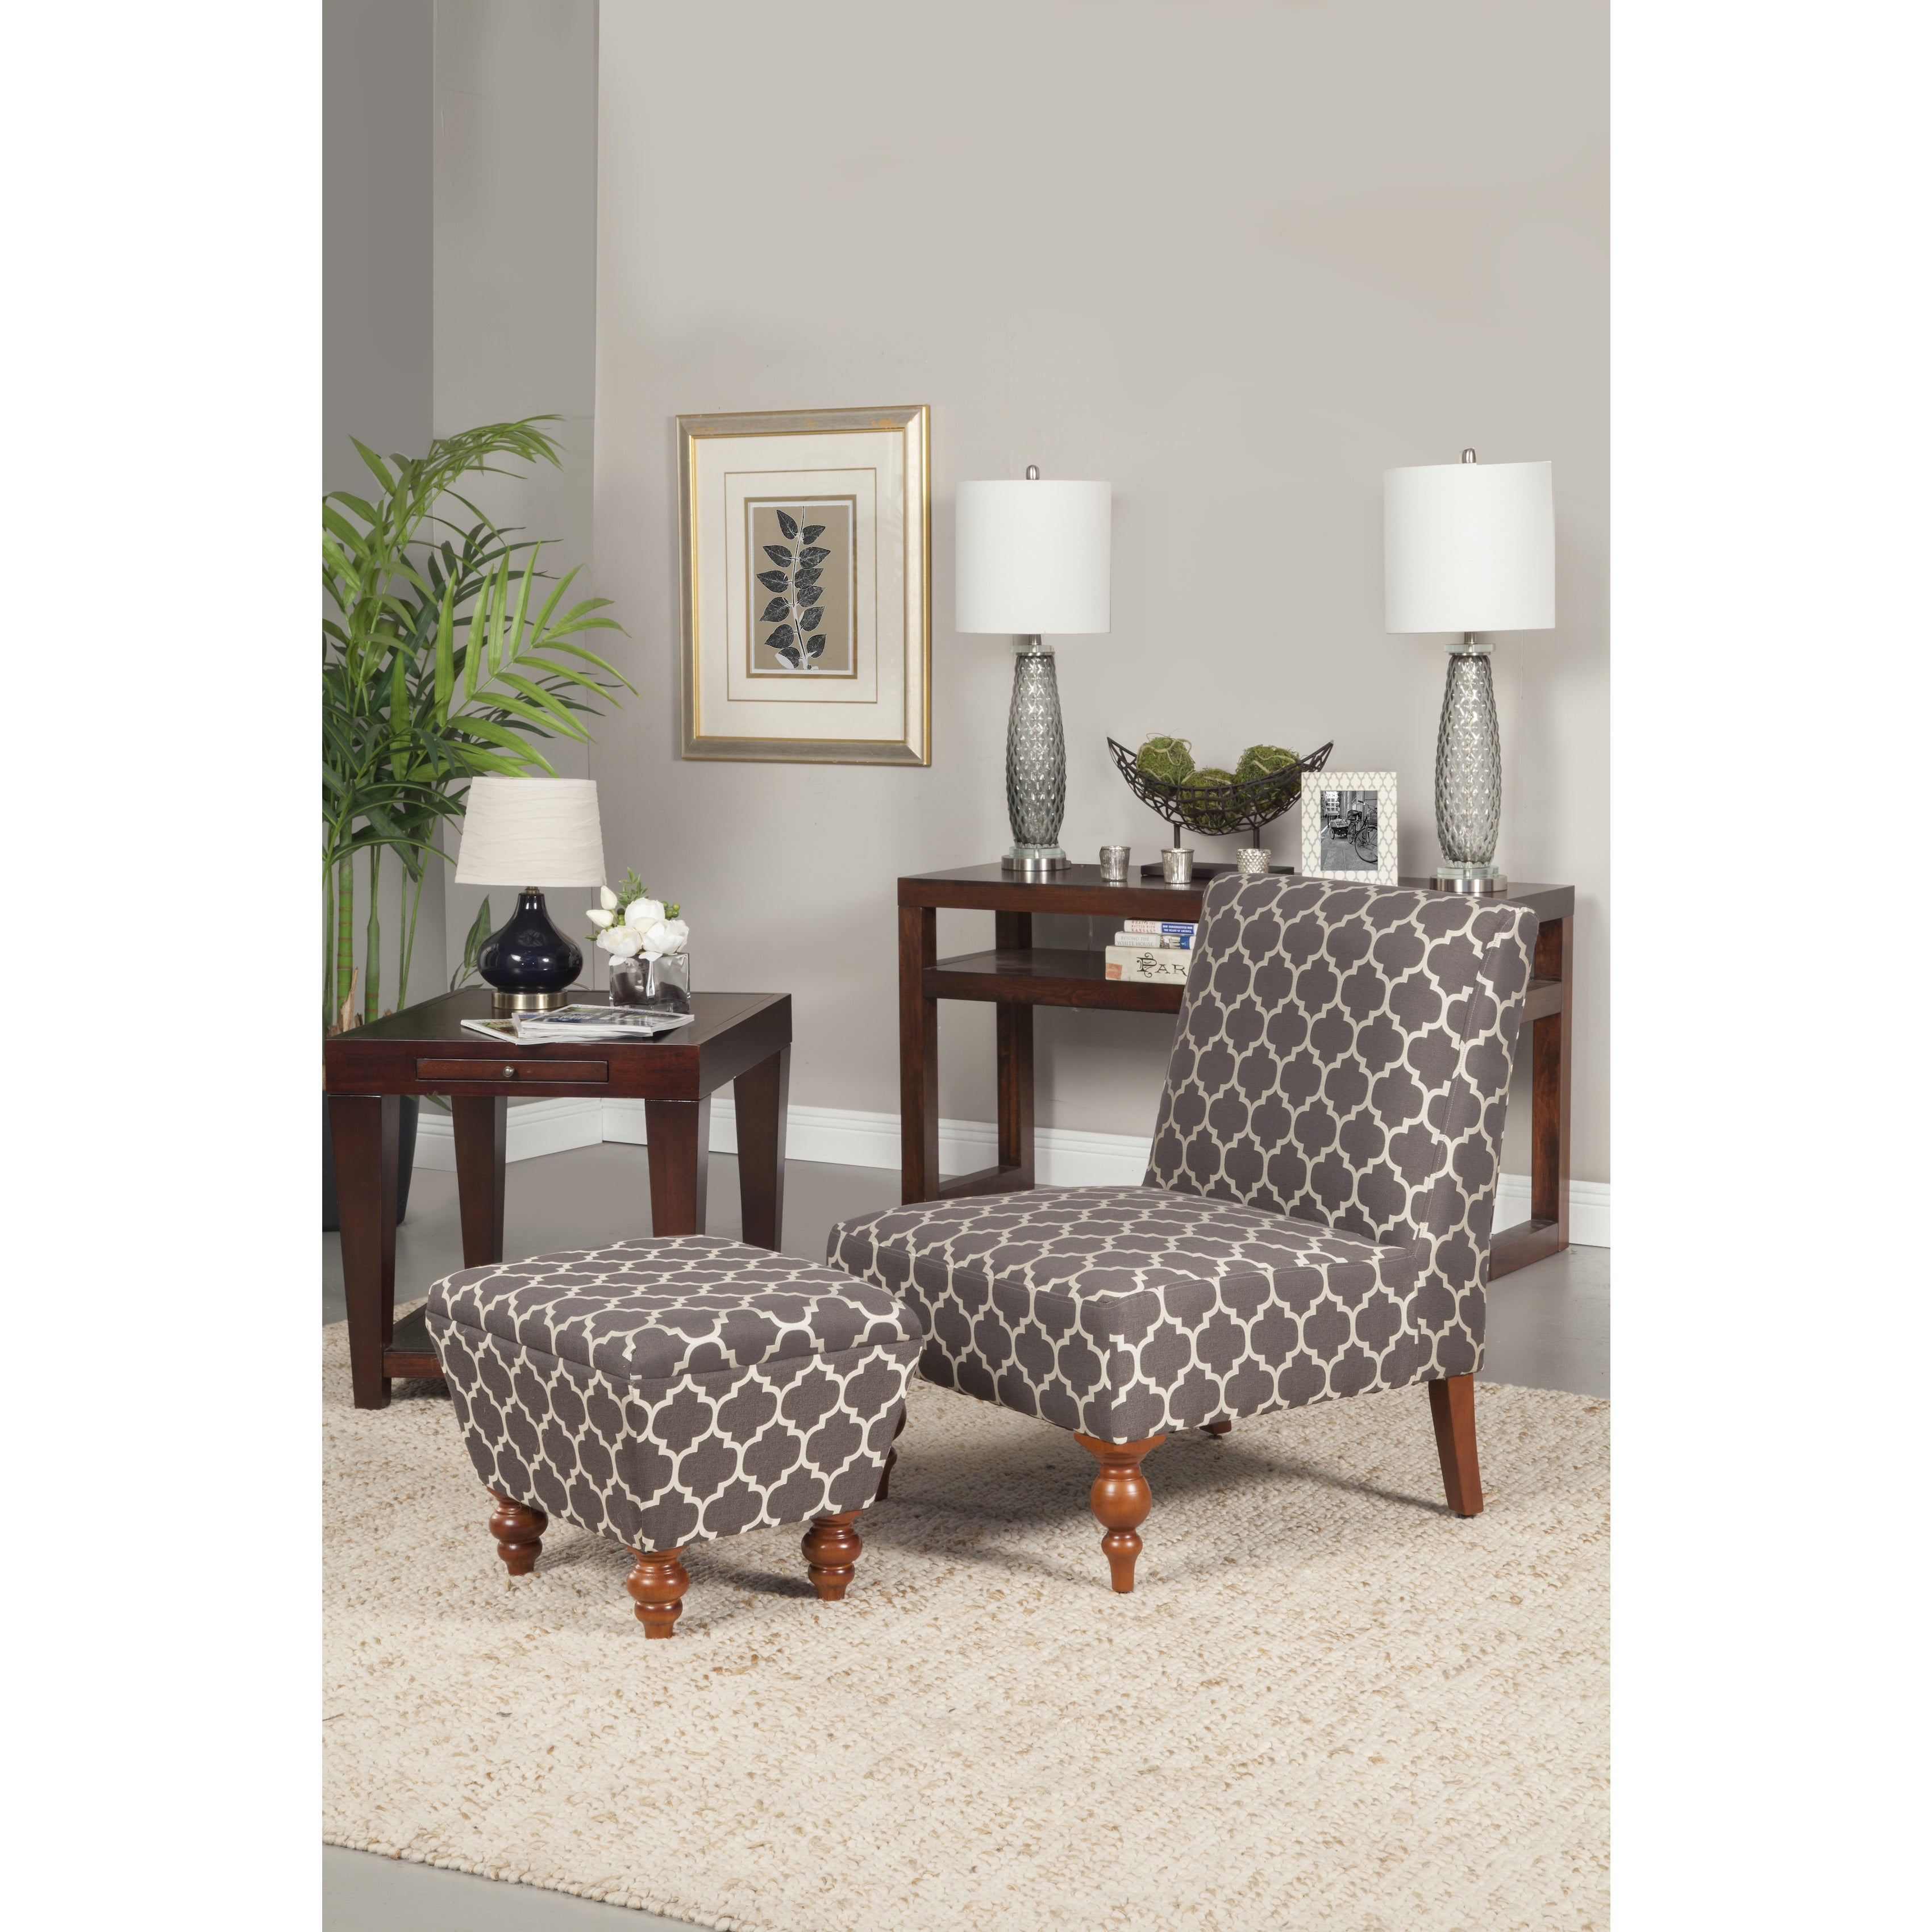 Shop HomePop Slipper Grey And Cream Quatrefoil Accent Chair And Ottoman    Free Shipping Today   Overstock   9739779